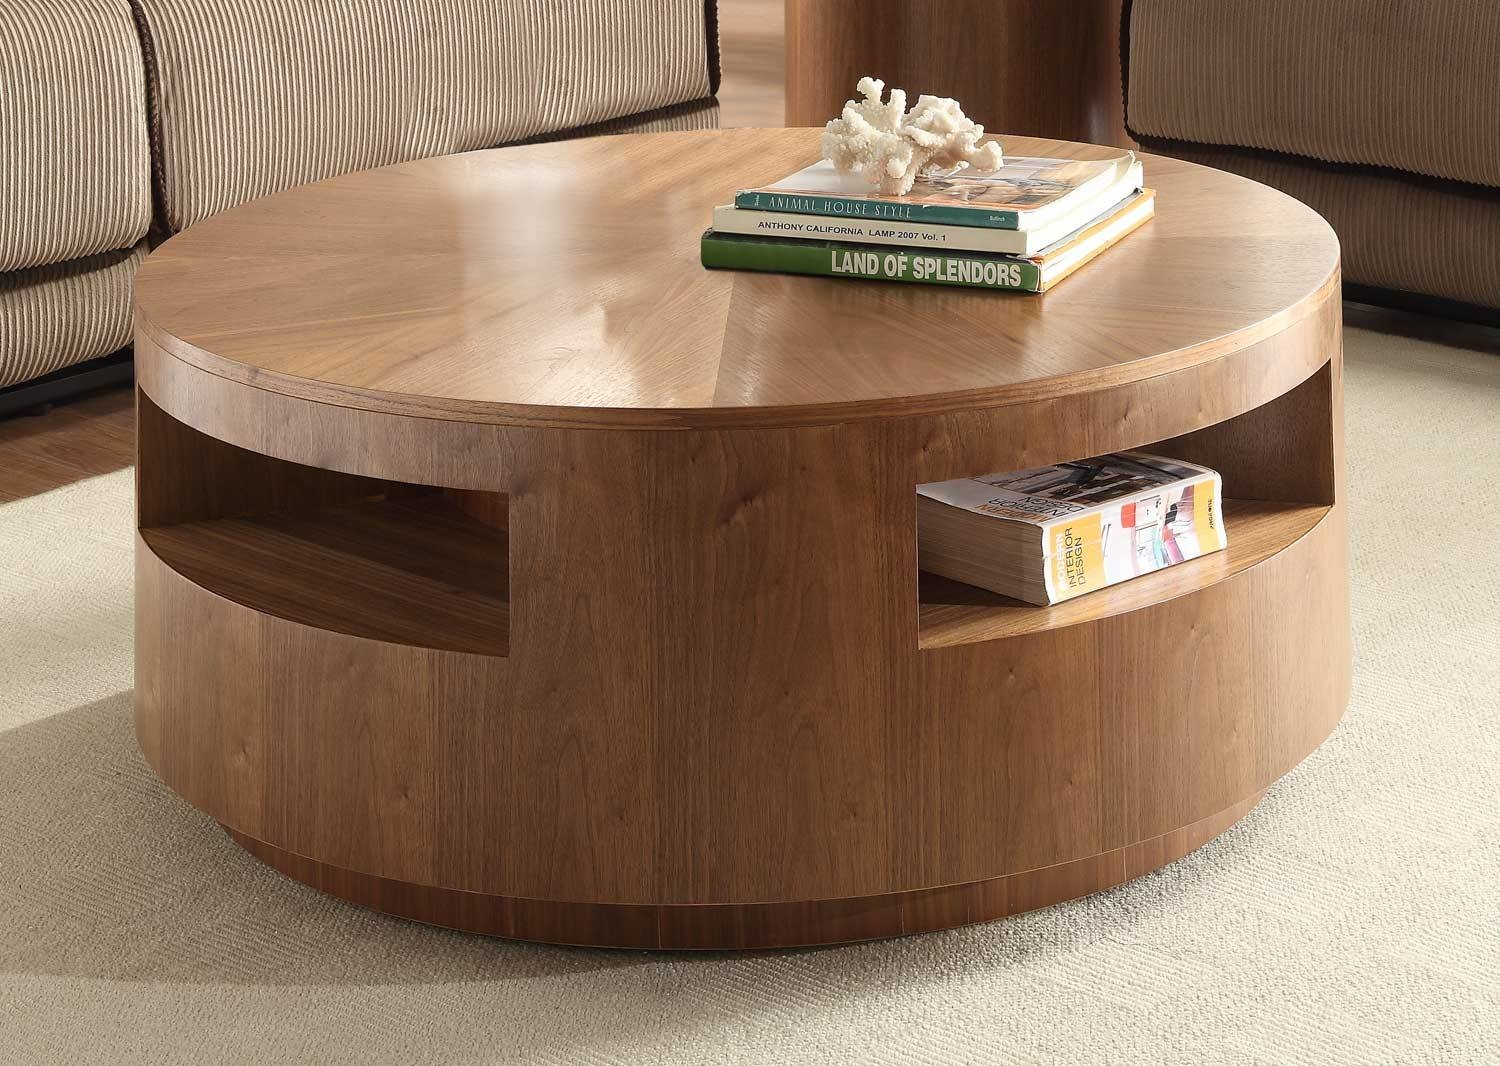 Unique Round Coffee Table - Starrkingschool with Round Coffee Tables With Drawers (Image 29 of 30)